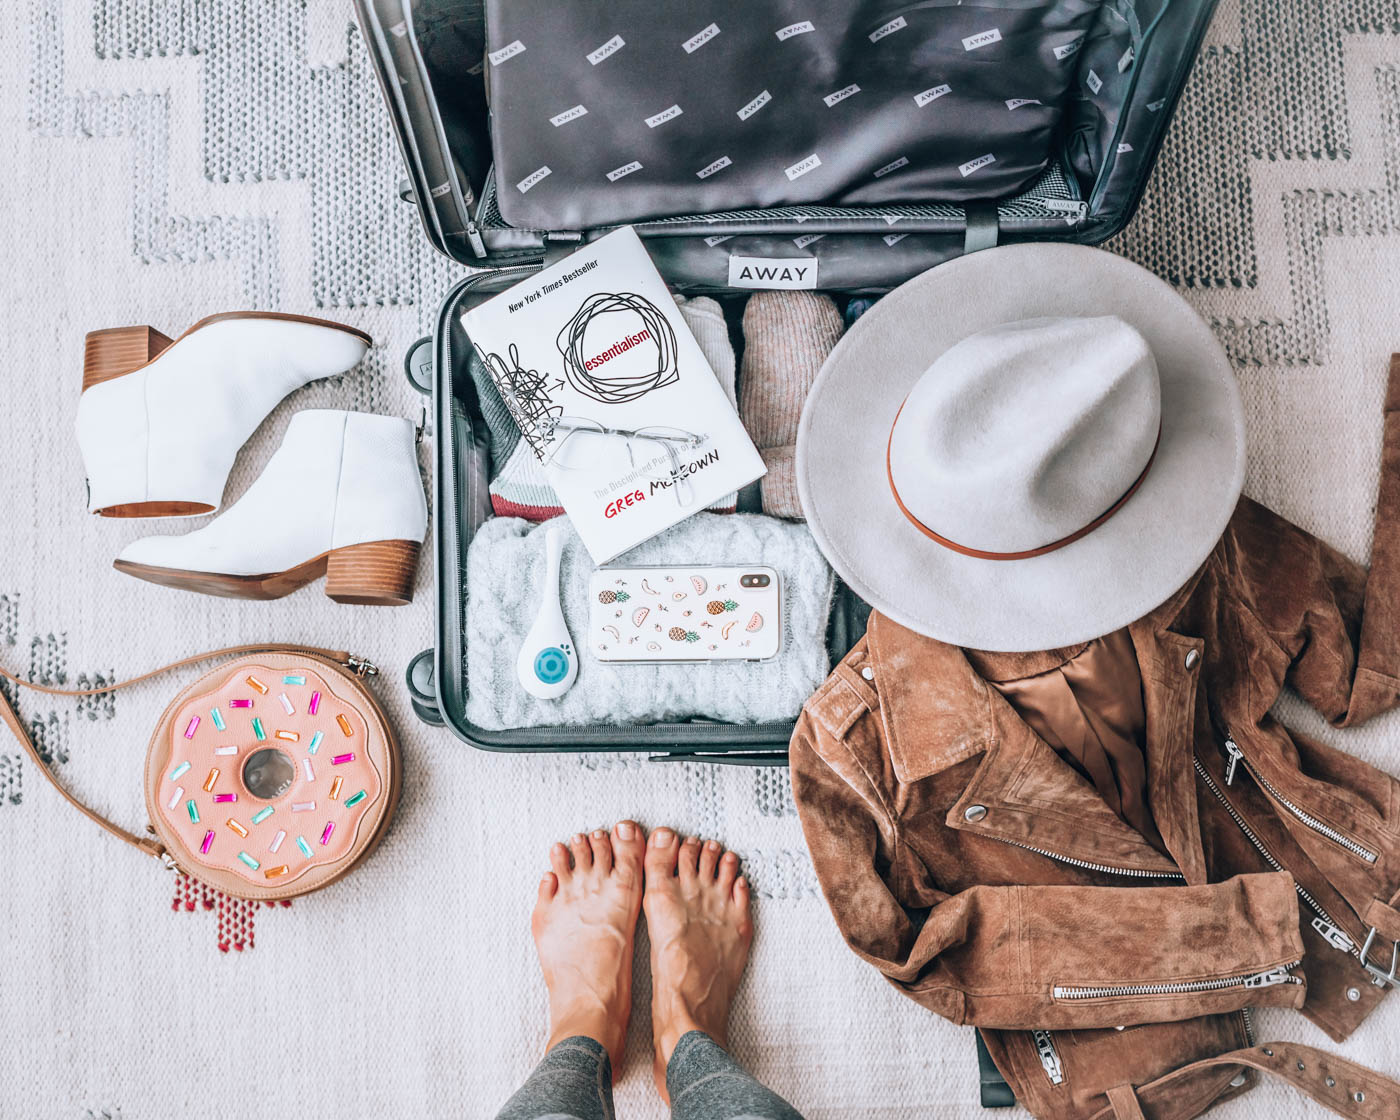 5 Tips for Maintaining Your Wellness Routine While Traveling | With the holiday travel season upon us, I wanted to share my best healthy travel tips so you can stay healthy and well on your next trip! | Om & the City Blog #OmAndTheCity #healthytravel #traveltips #holidaytravel #wellness #healthytraveltips